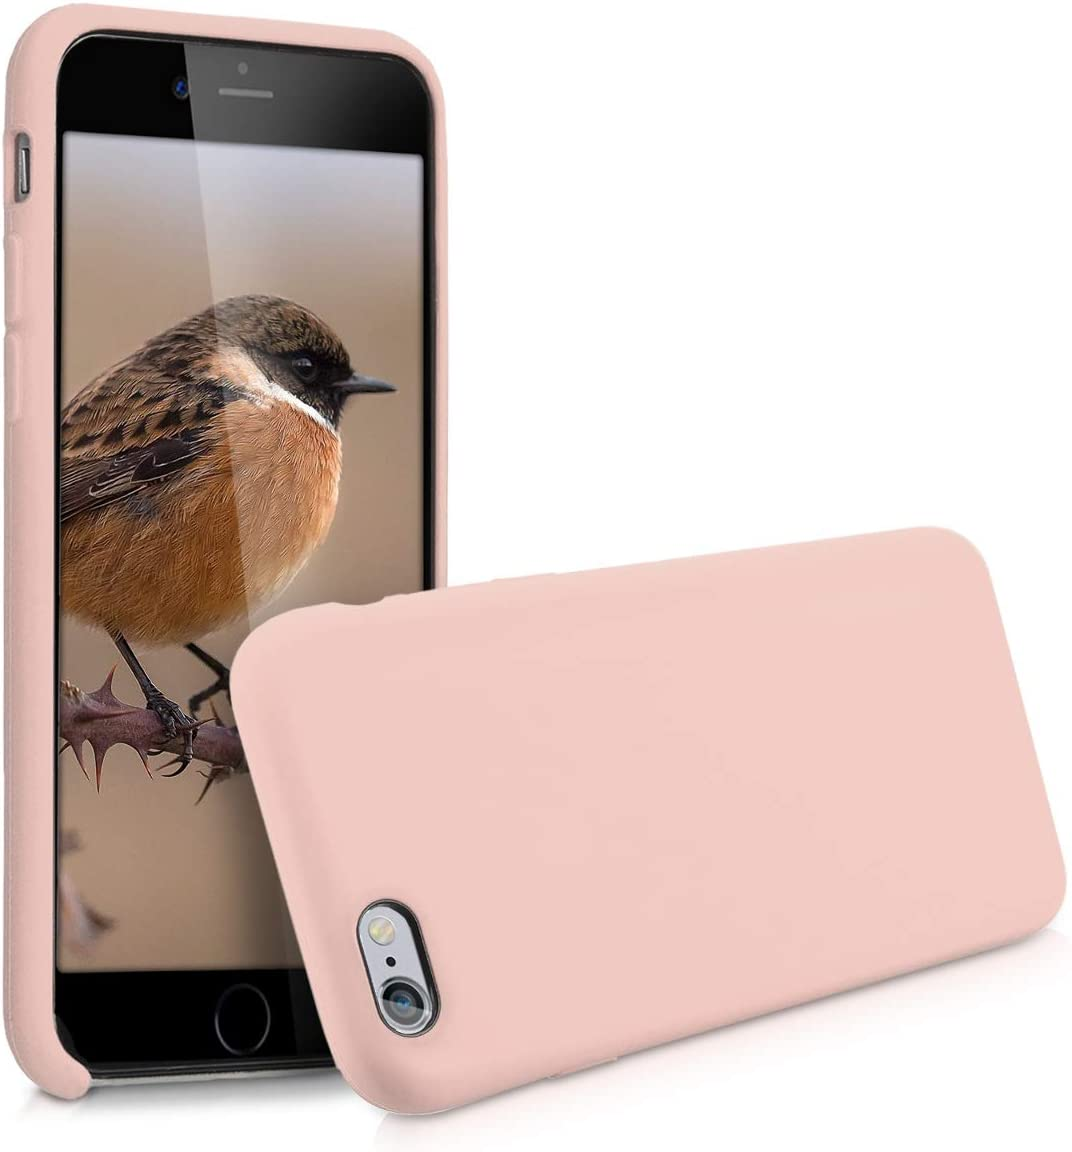 kwmobile TPU Silicone Case Compatible with Apple iPhone 6 / 6S - Soft Flexible Rubber Protective Cover - Dusty Pink